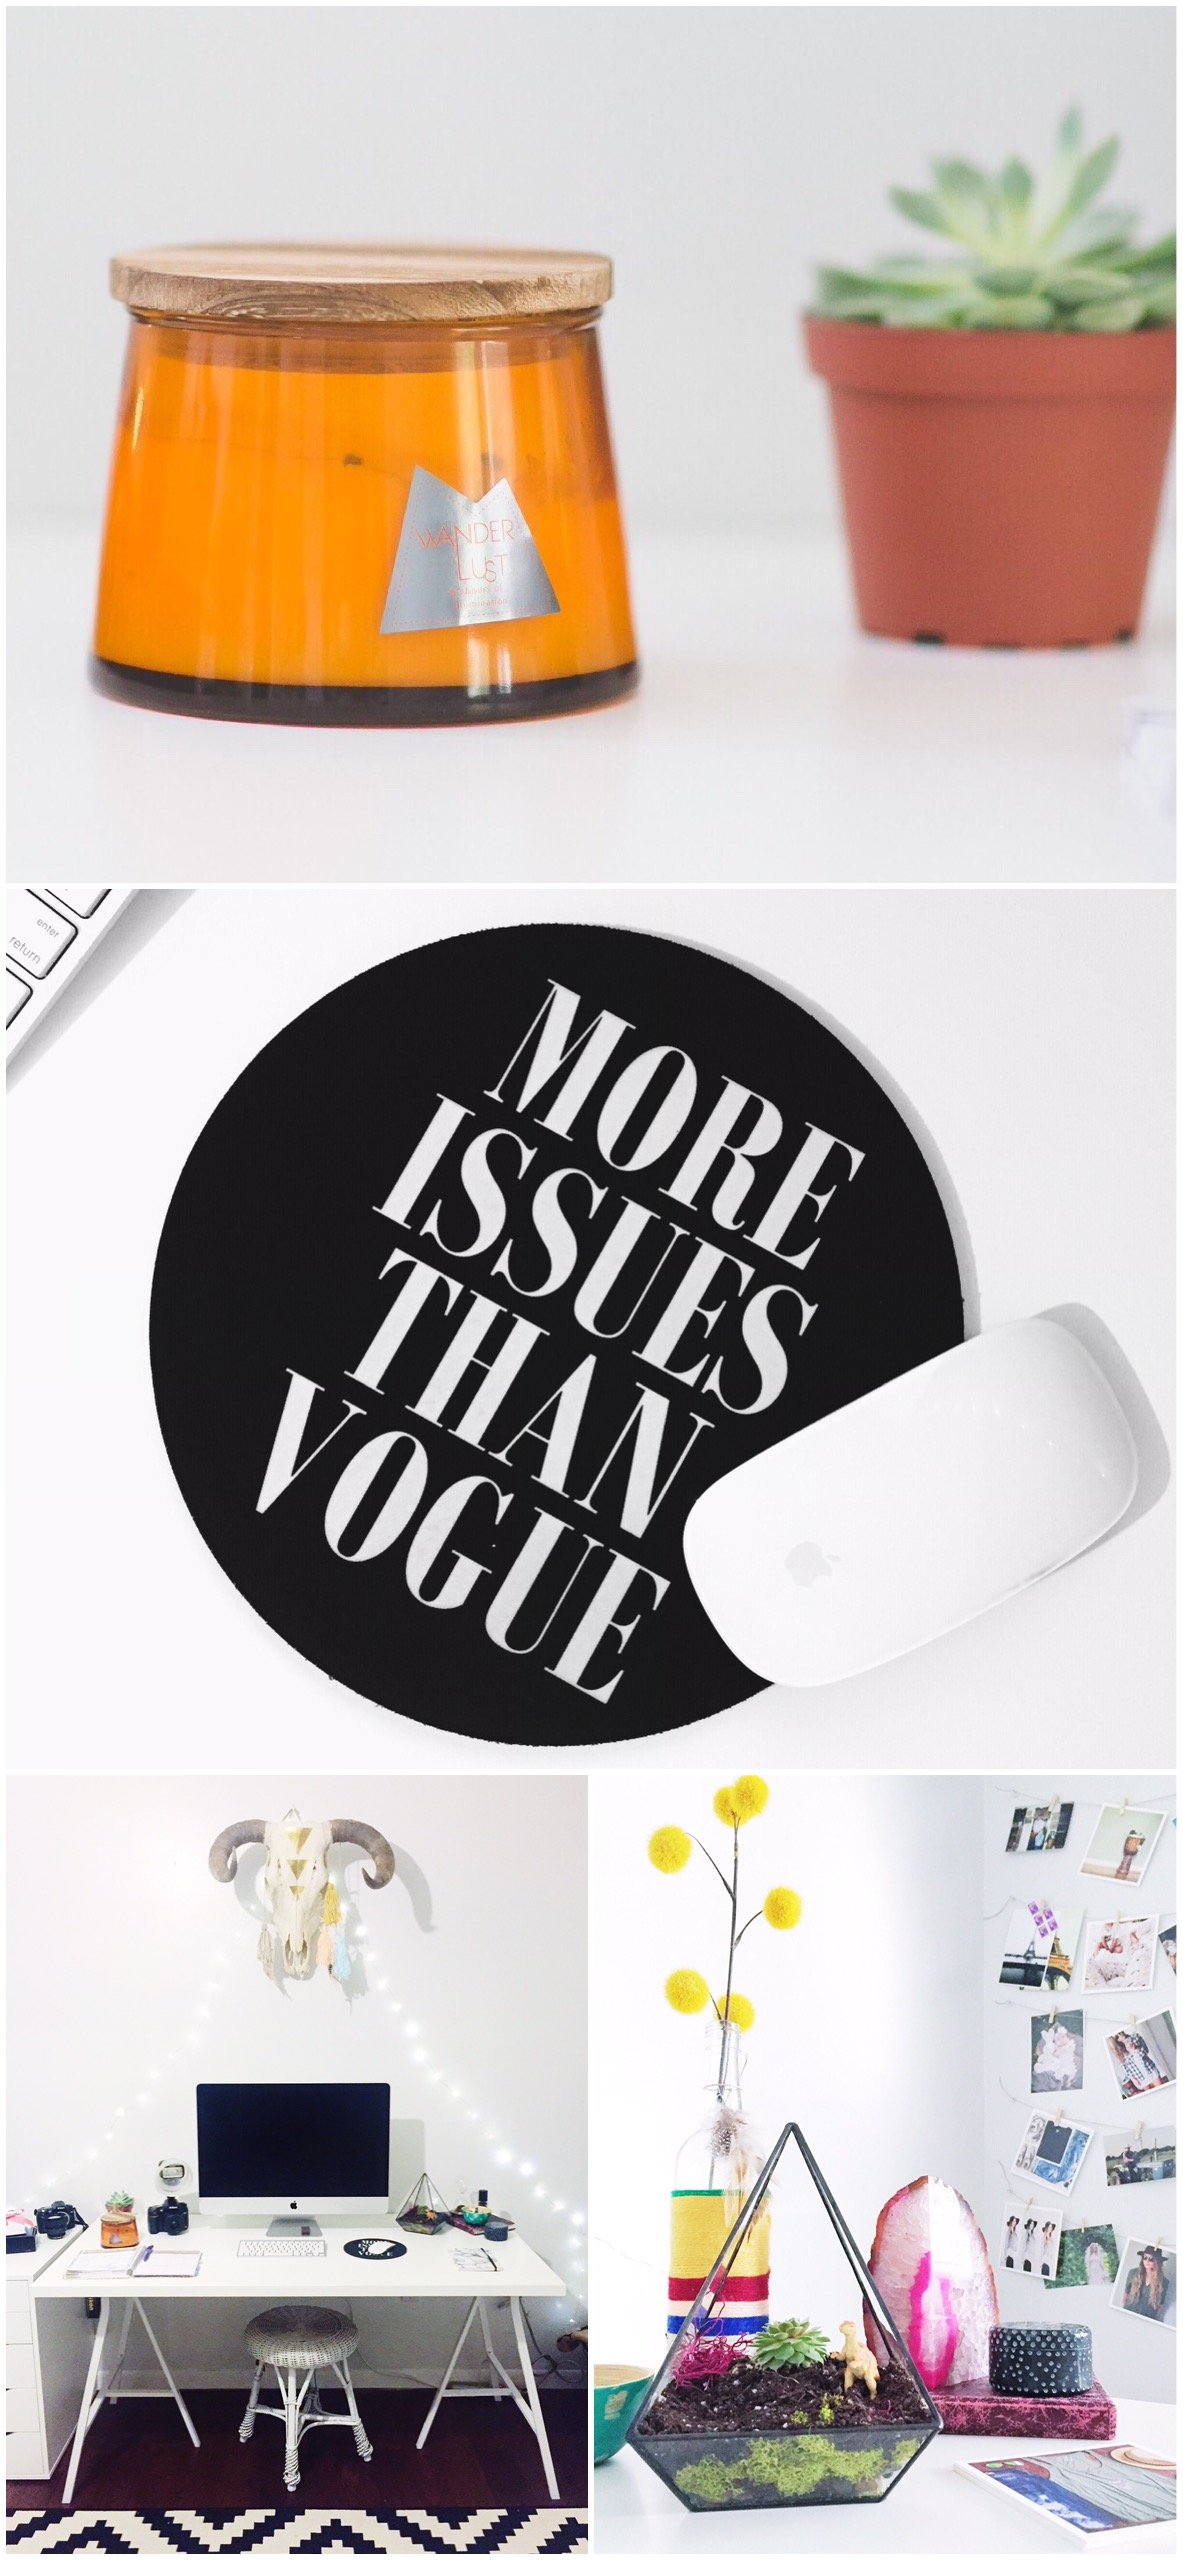 Office Desk Decoration | Urban Outfitters | More Issues Than Vogue | Boho Chic Office | Bohemian | Laraina Hase